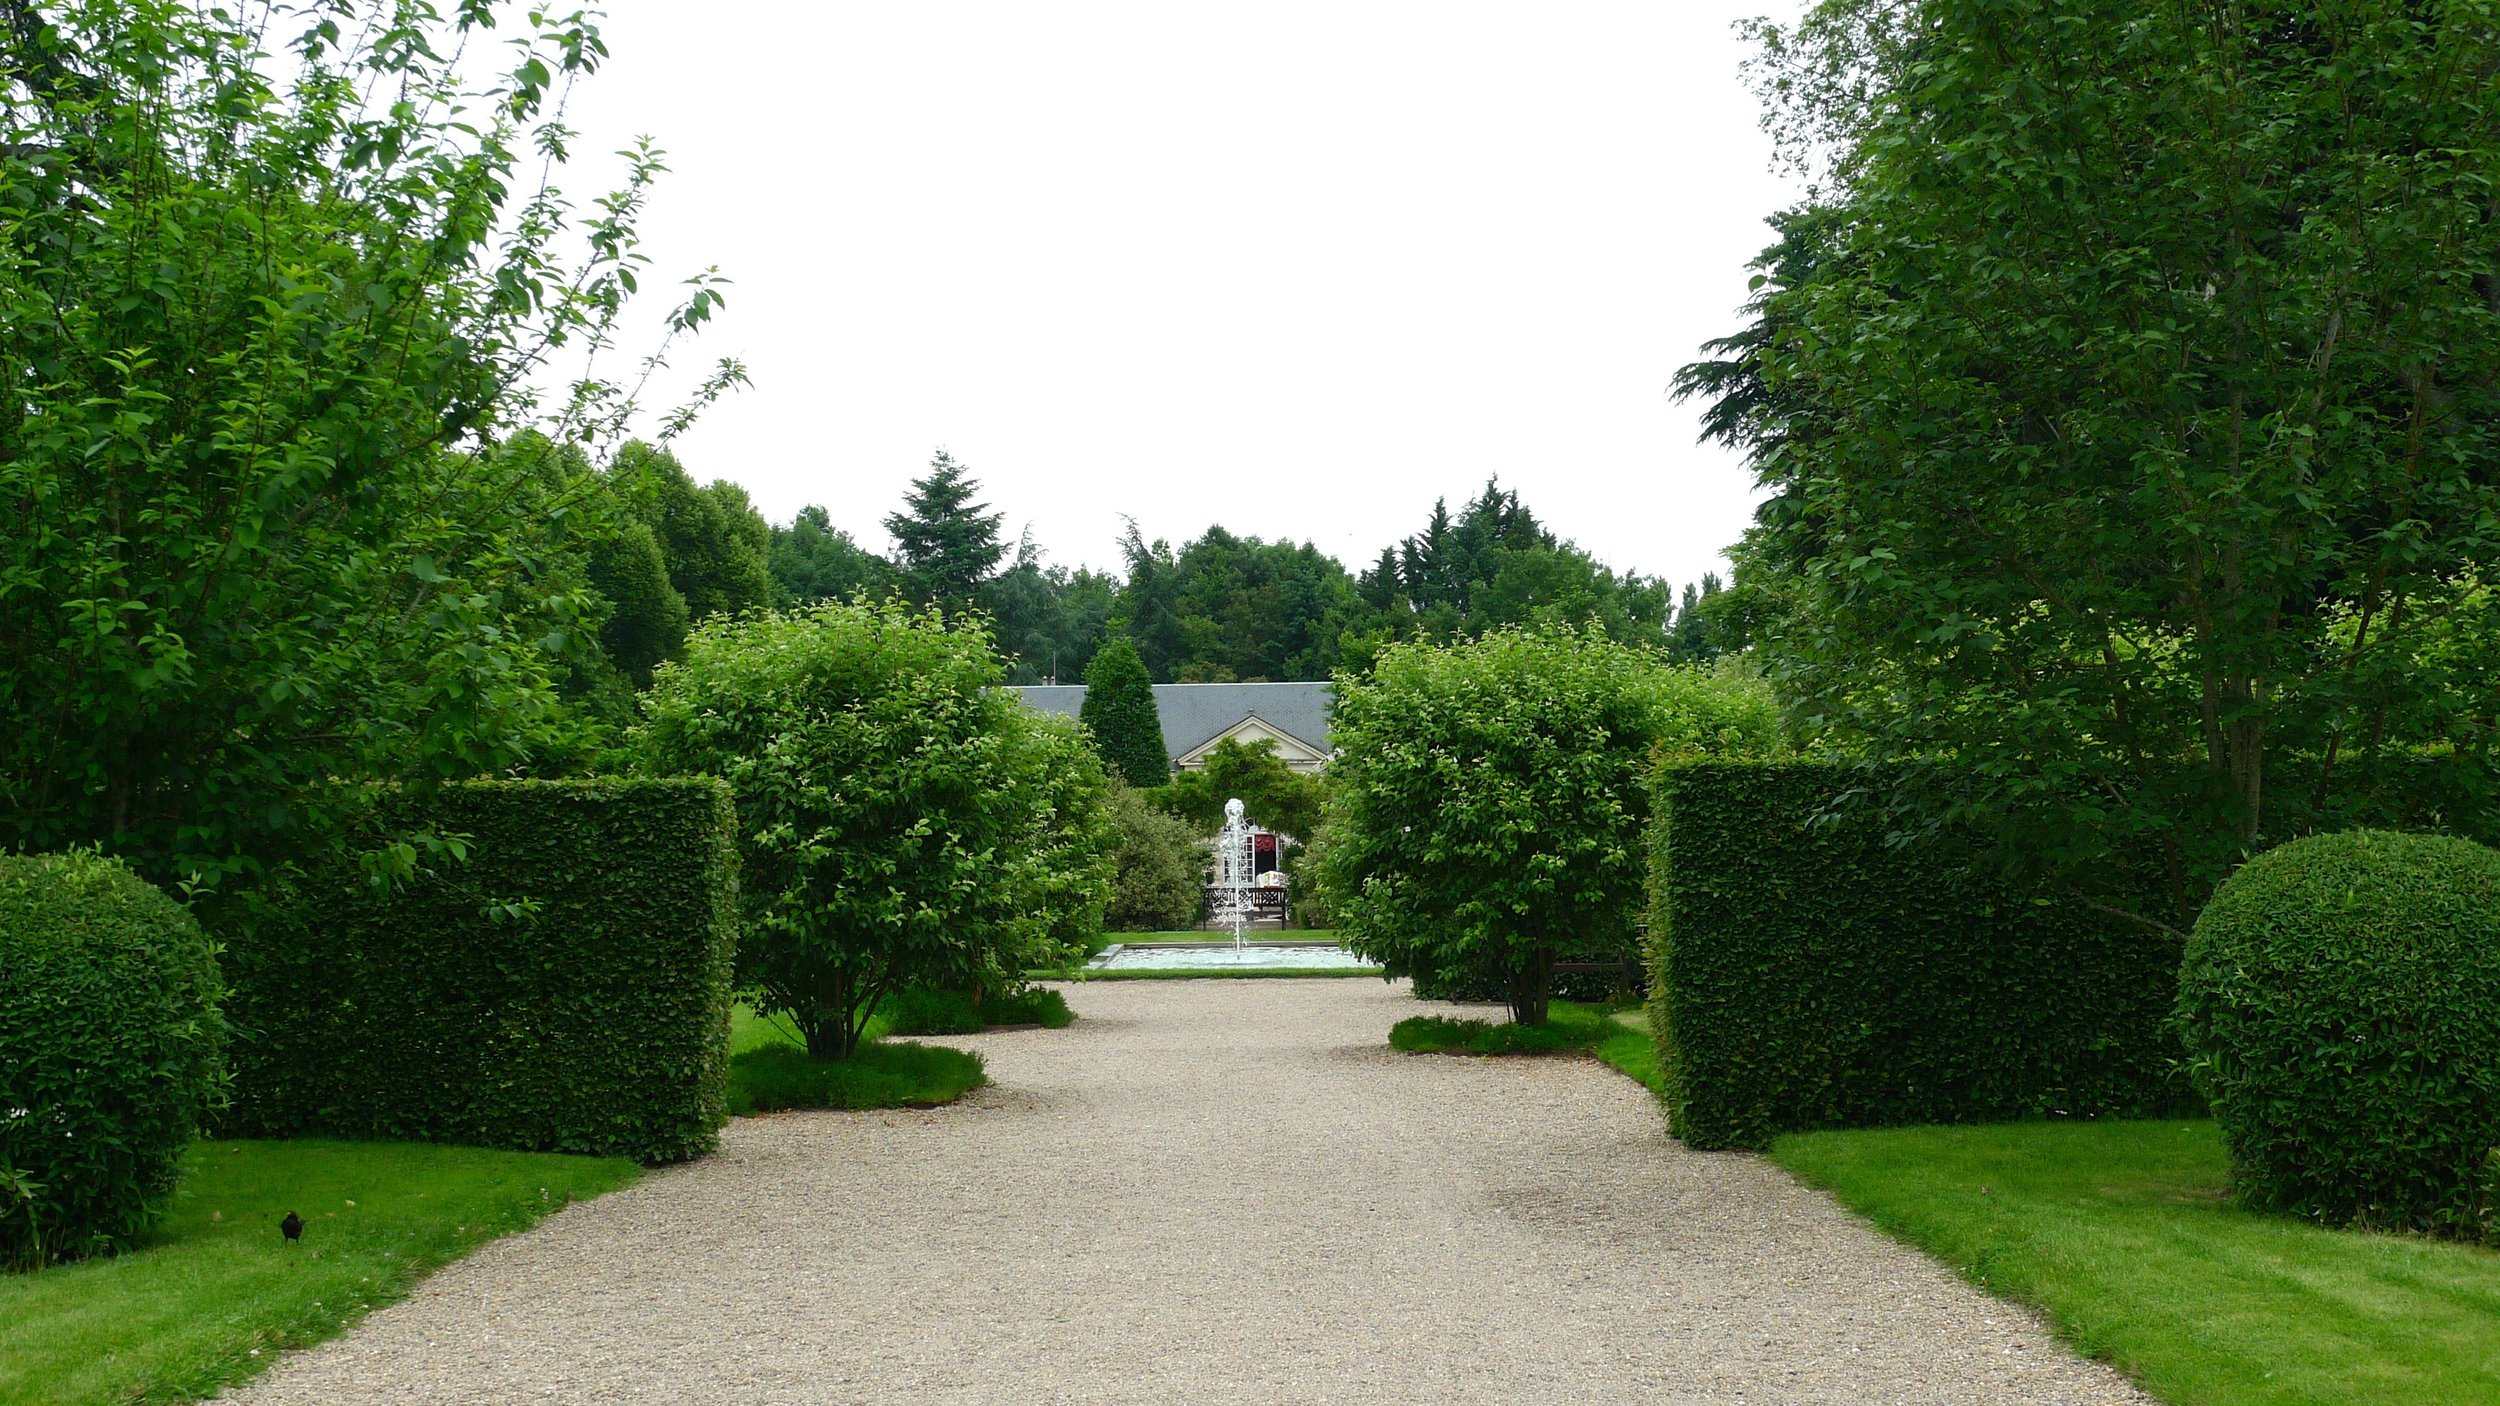 Leaving the chateau heading towards the Orangerie at Cheverny